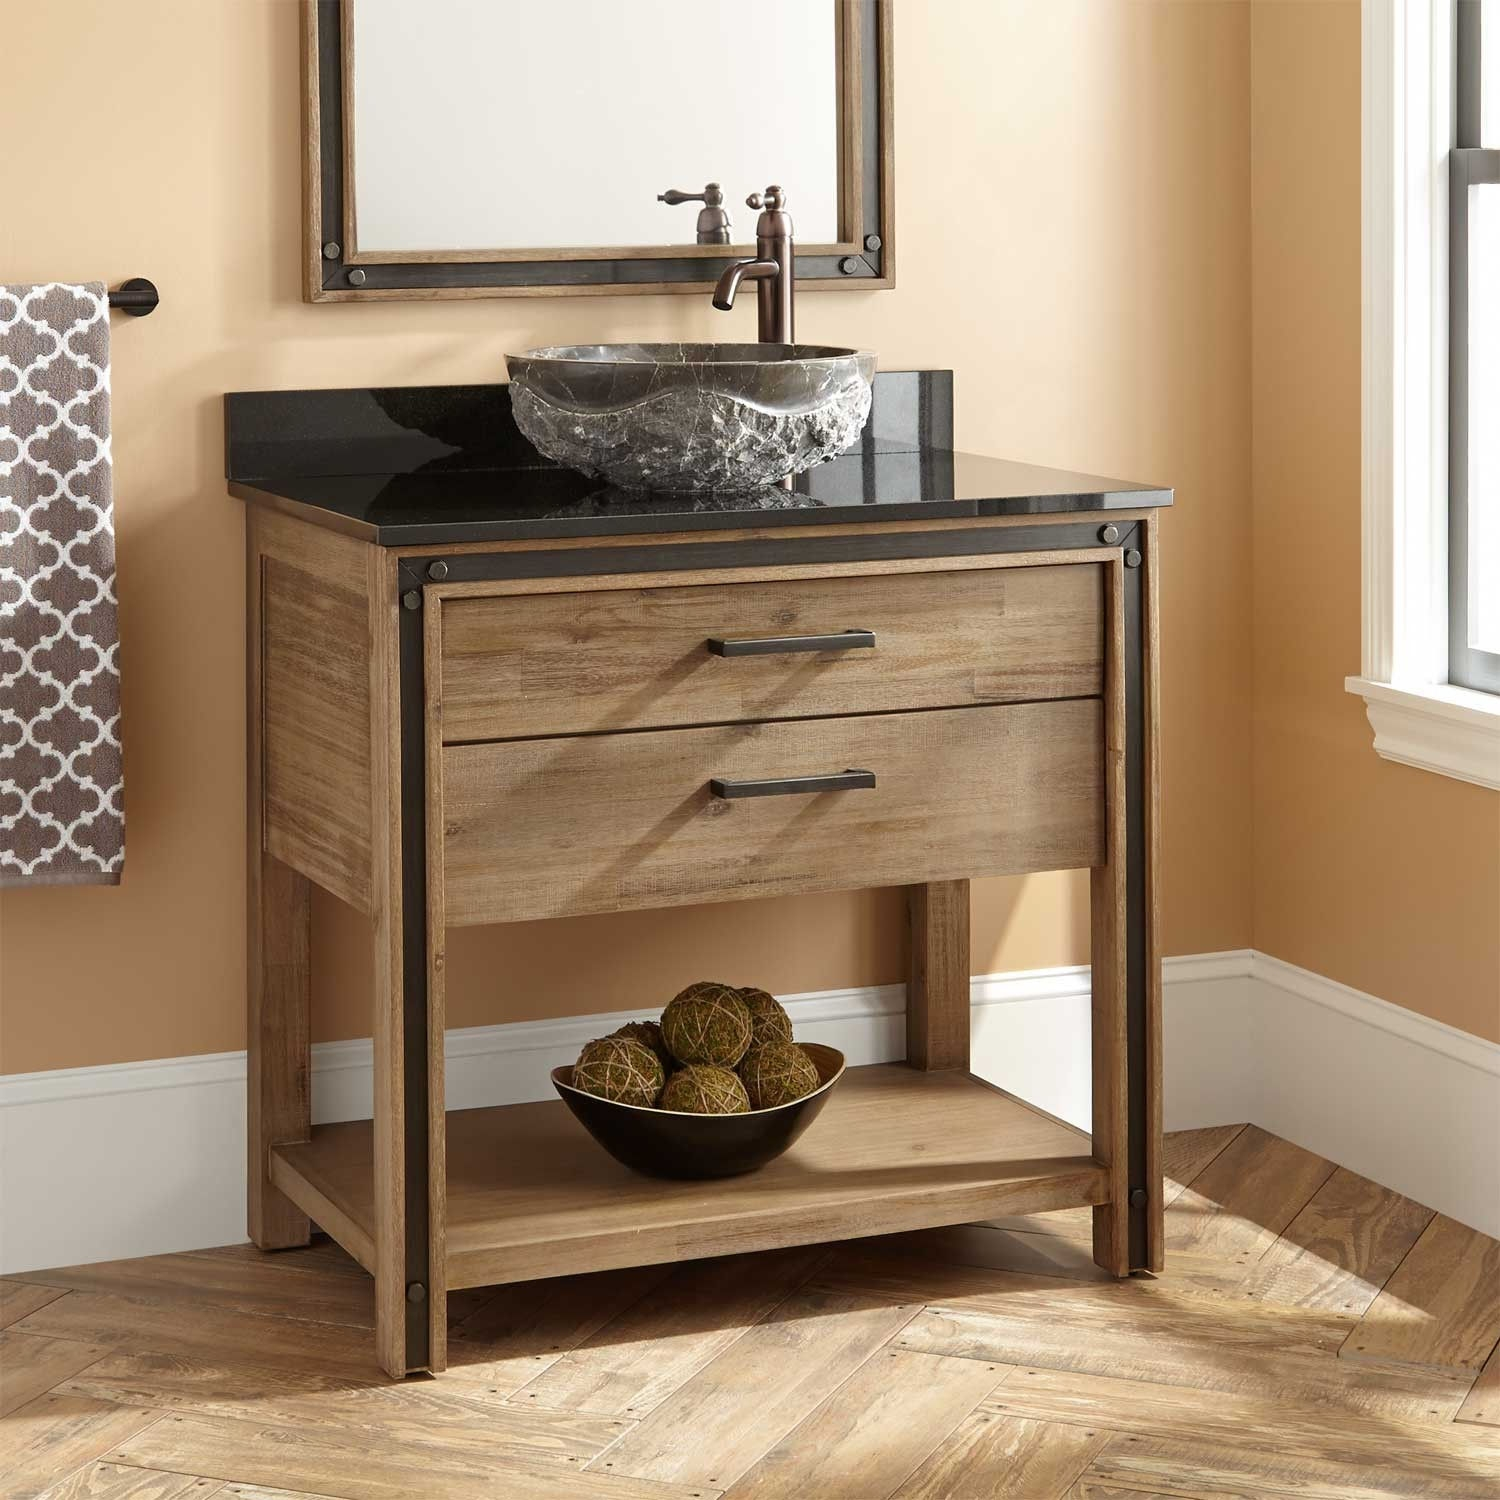 Bathroom Cabinets With Vessel Sinks1500 X 1500